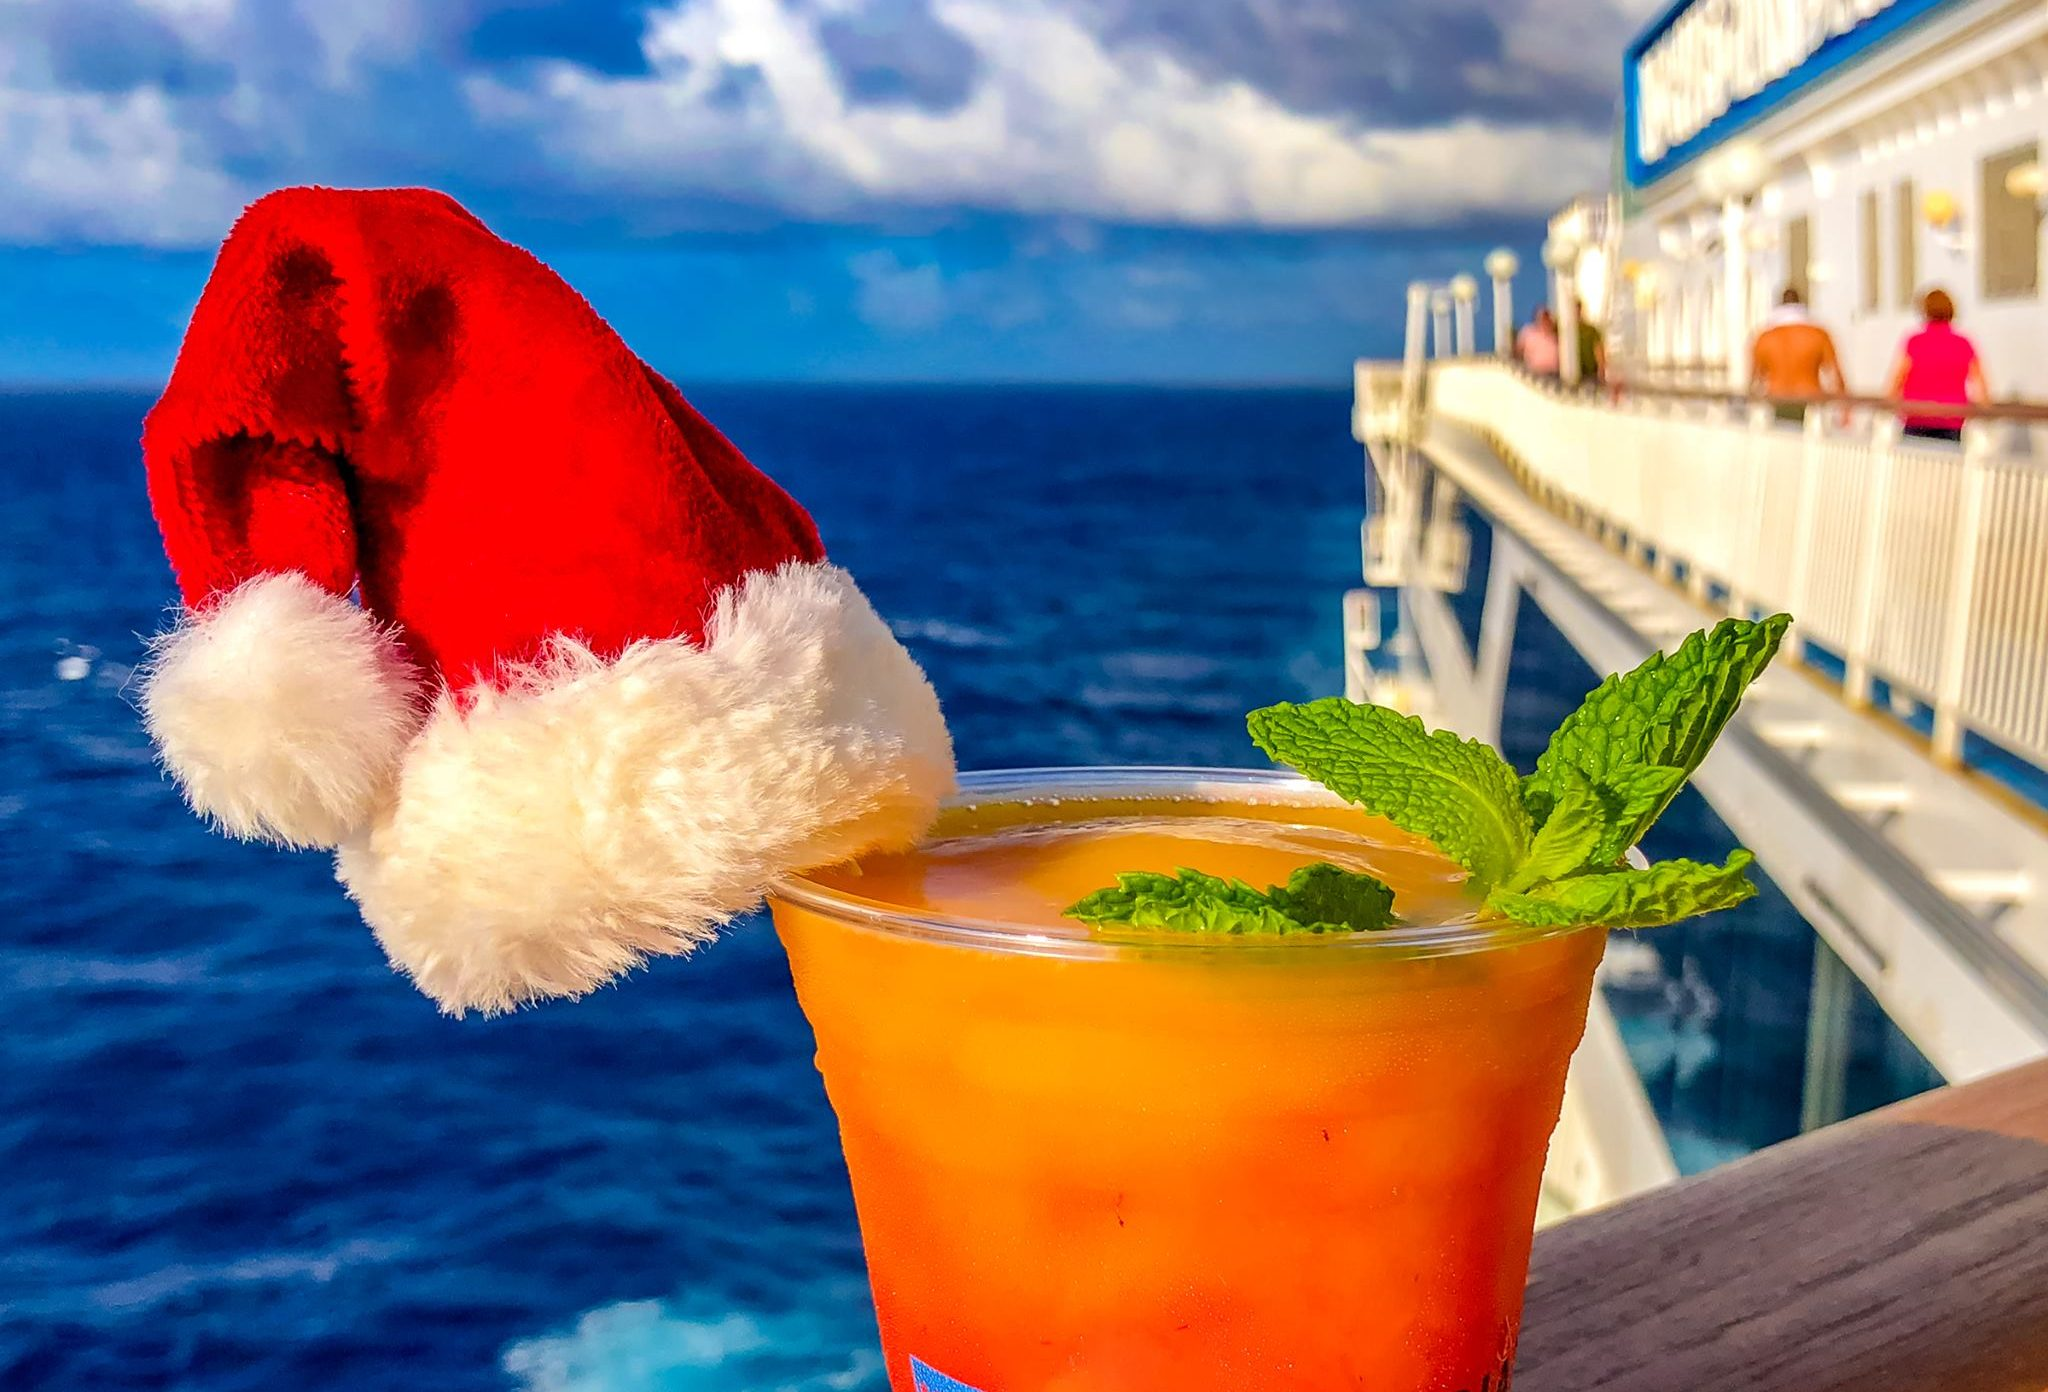 25 Tips to Save BIG on Your Next Cruise - Cruise during off peak season